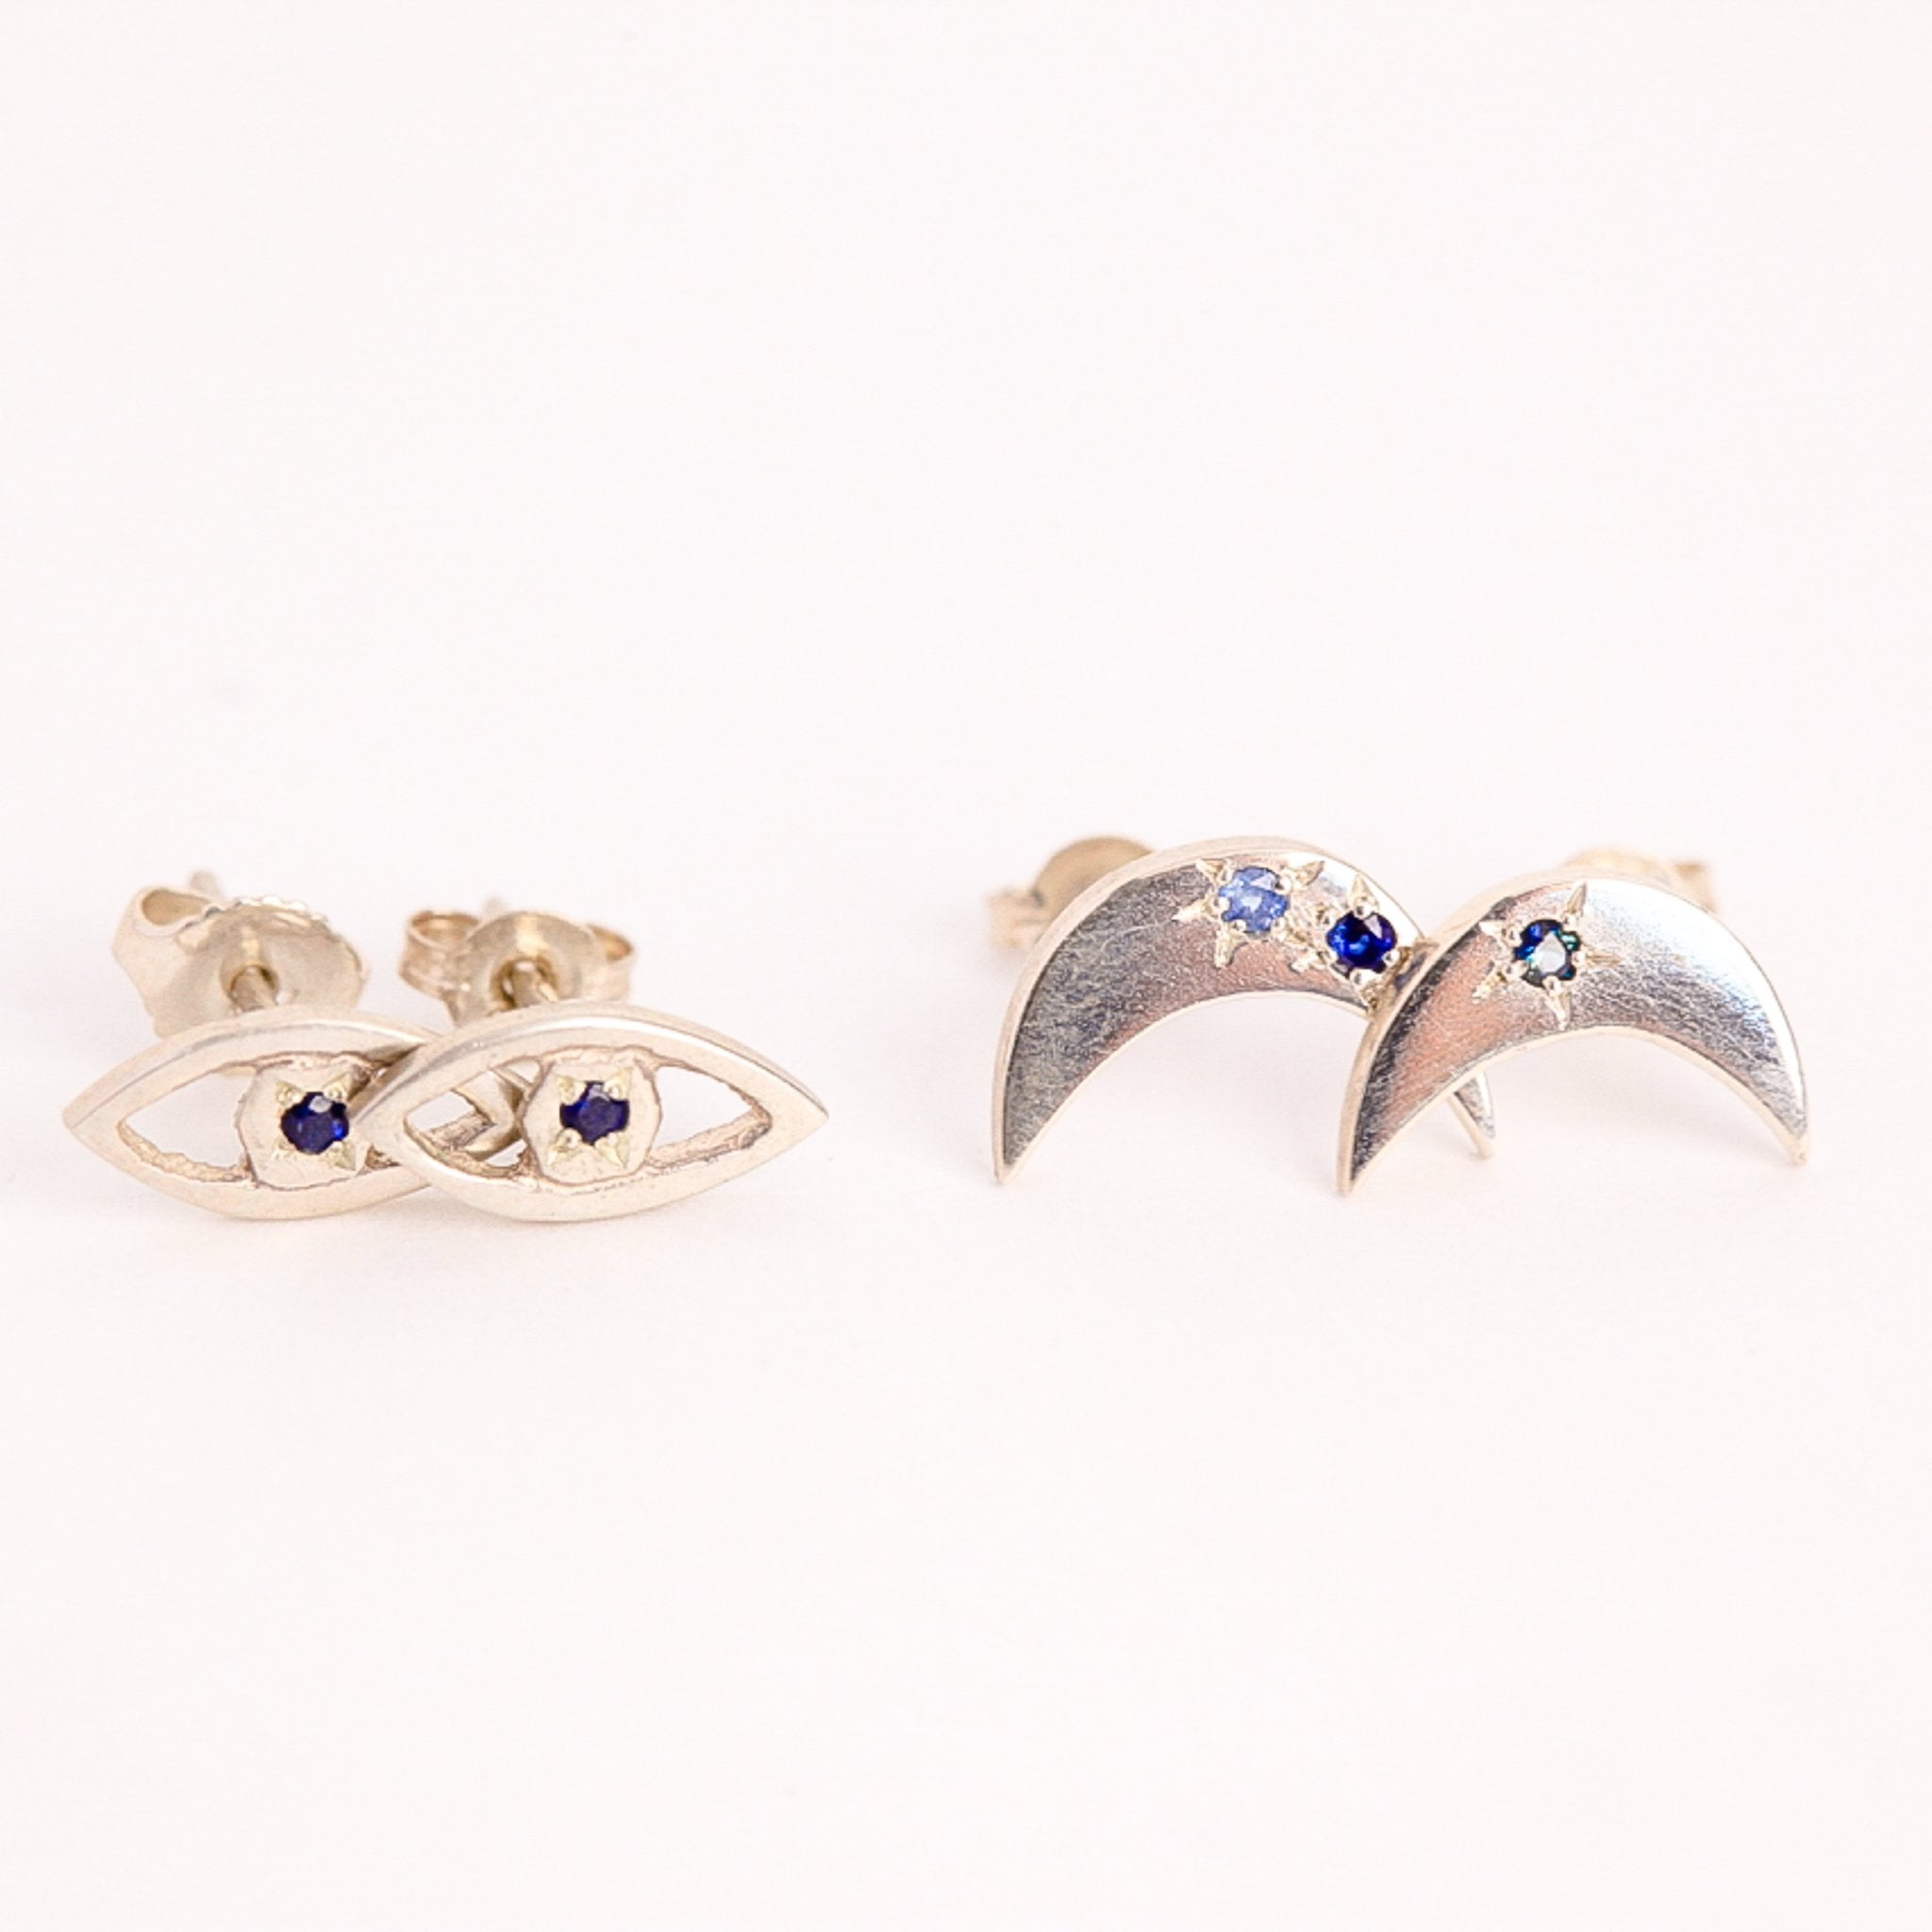 Handmade Textured Sterling Silver Eye Studs with Ethically Sourced Australian Sapphires, Hand Made Jewellery, Made in Melbourne